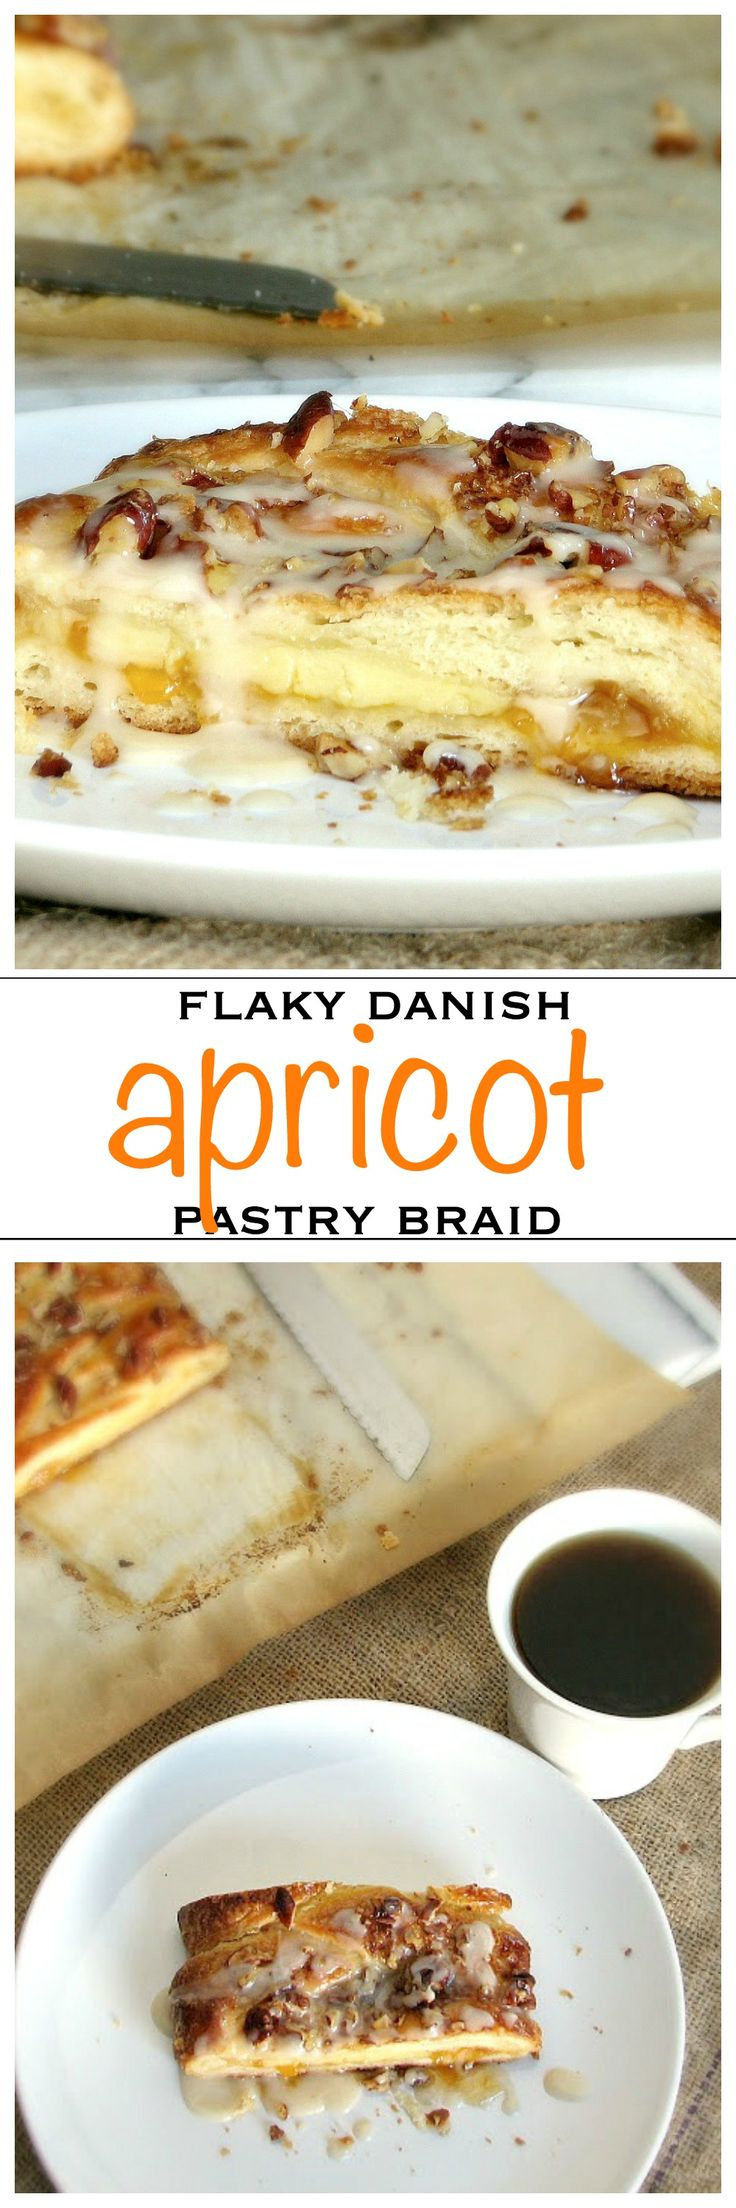 Homemade flaky danish pastry braid filled with custard and apricot | Foodness Gracious